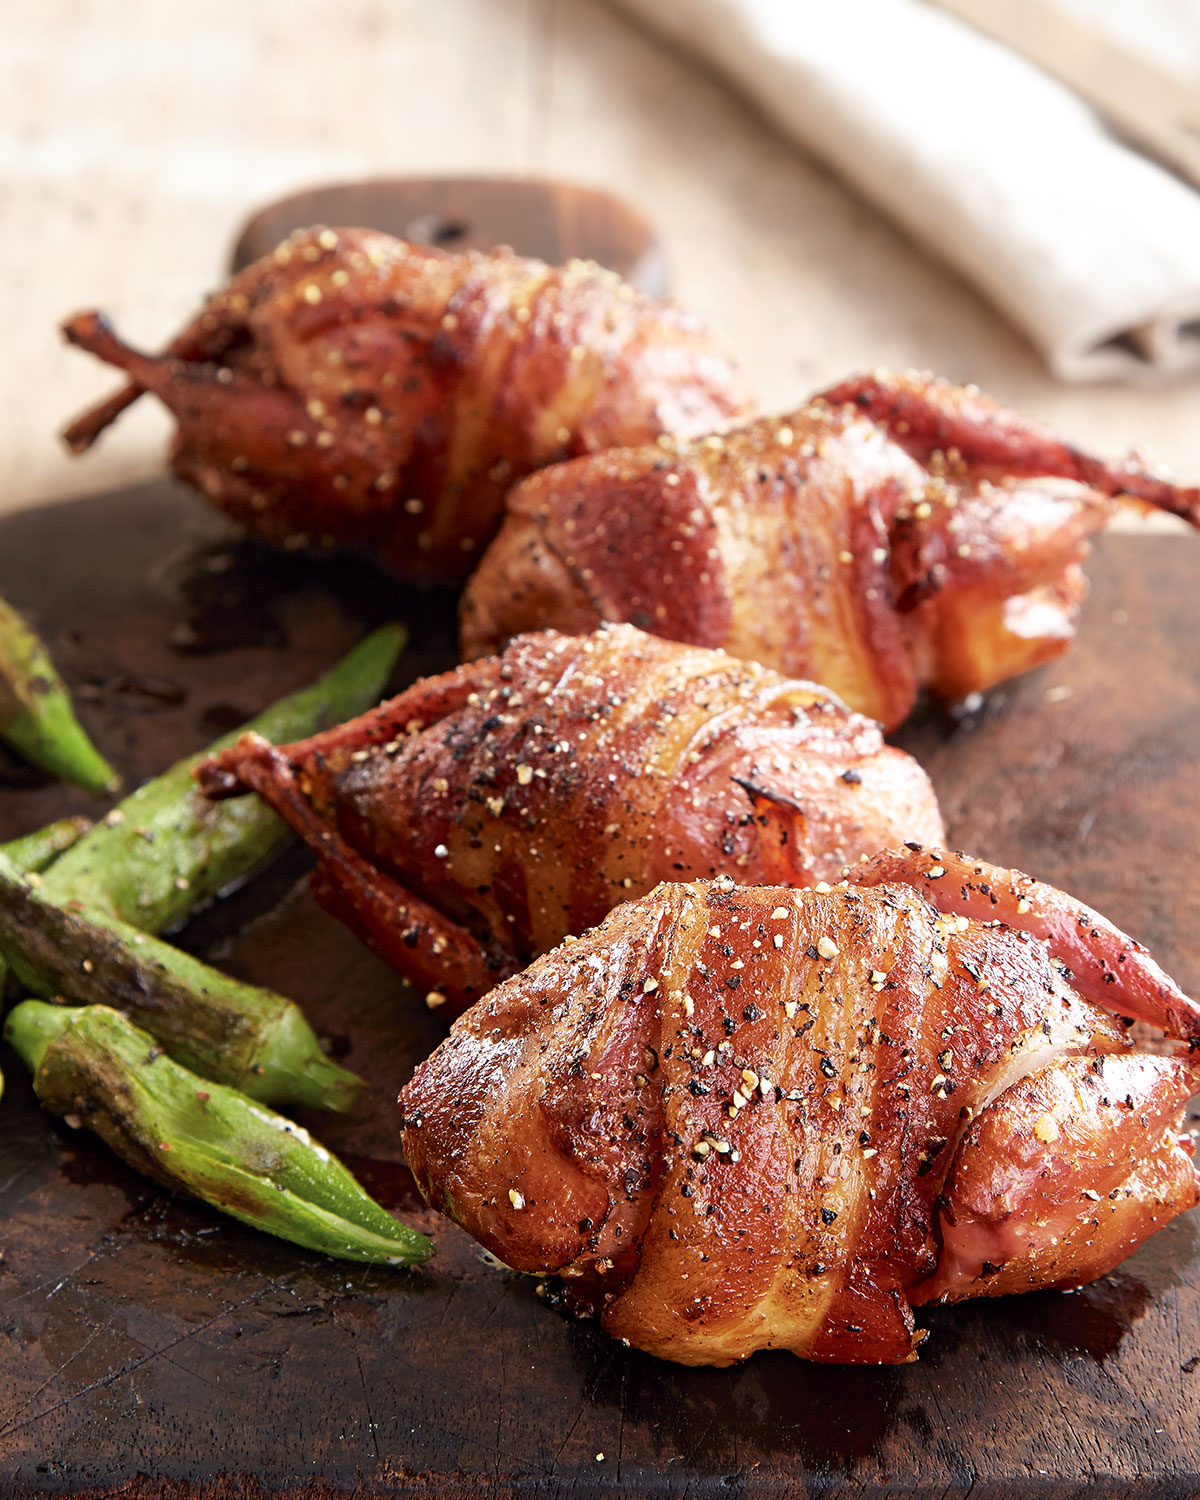 Bacon Wrapped Stuffed Quail For 8 People